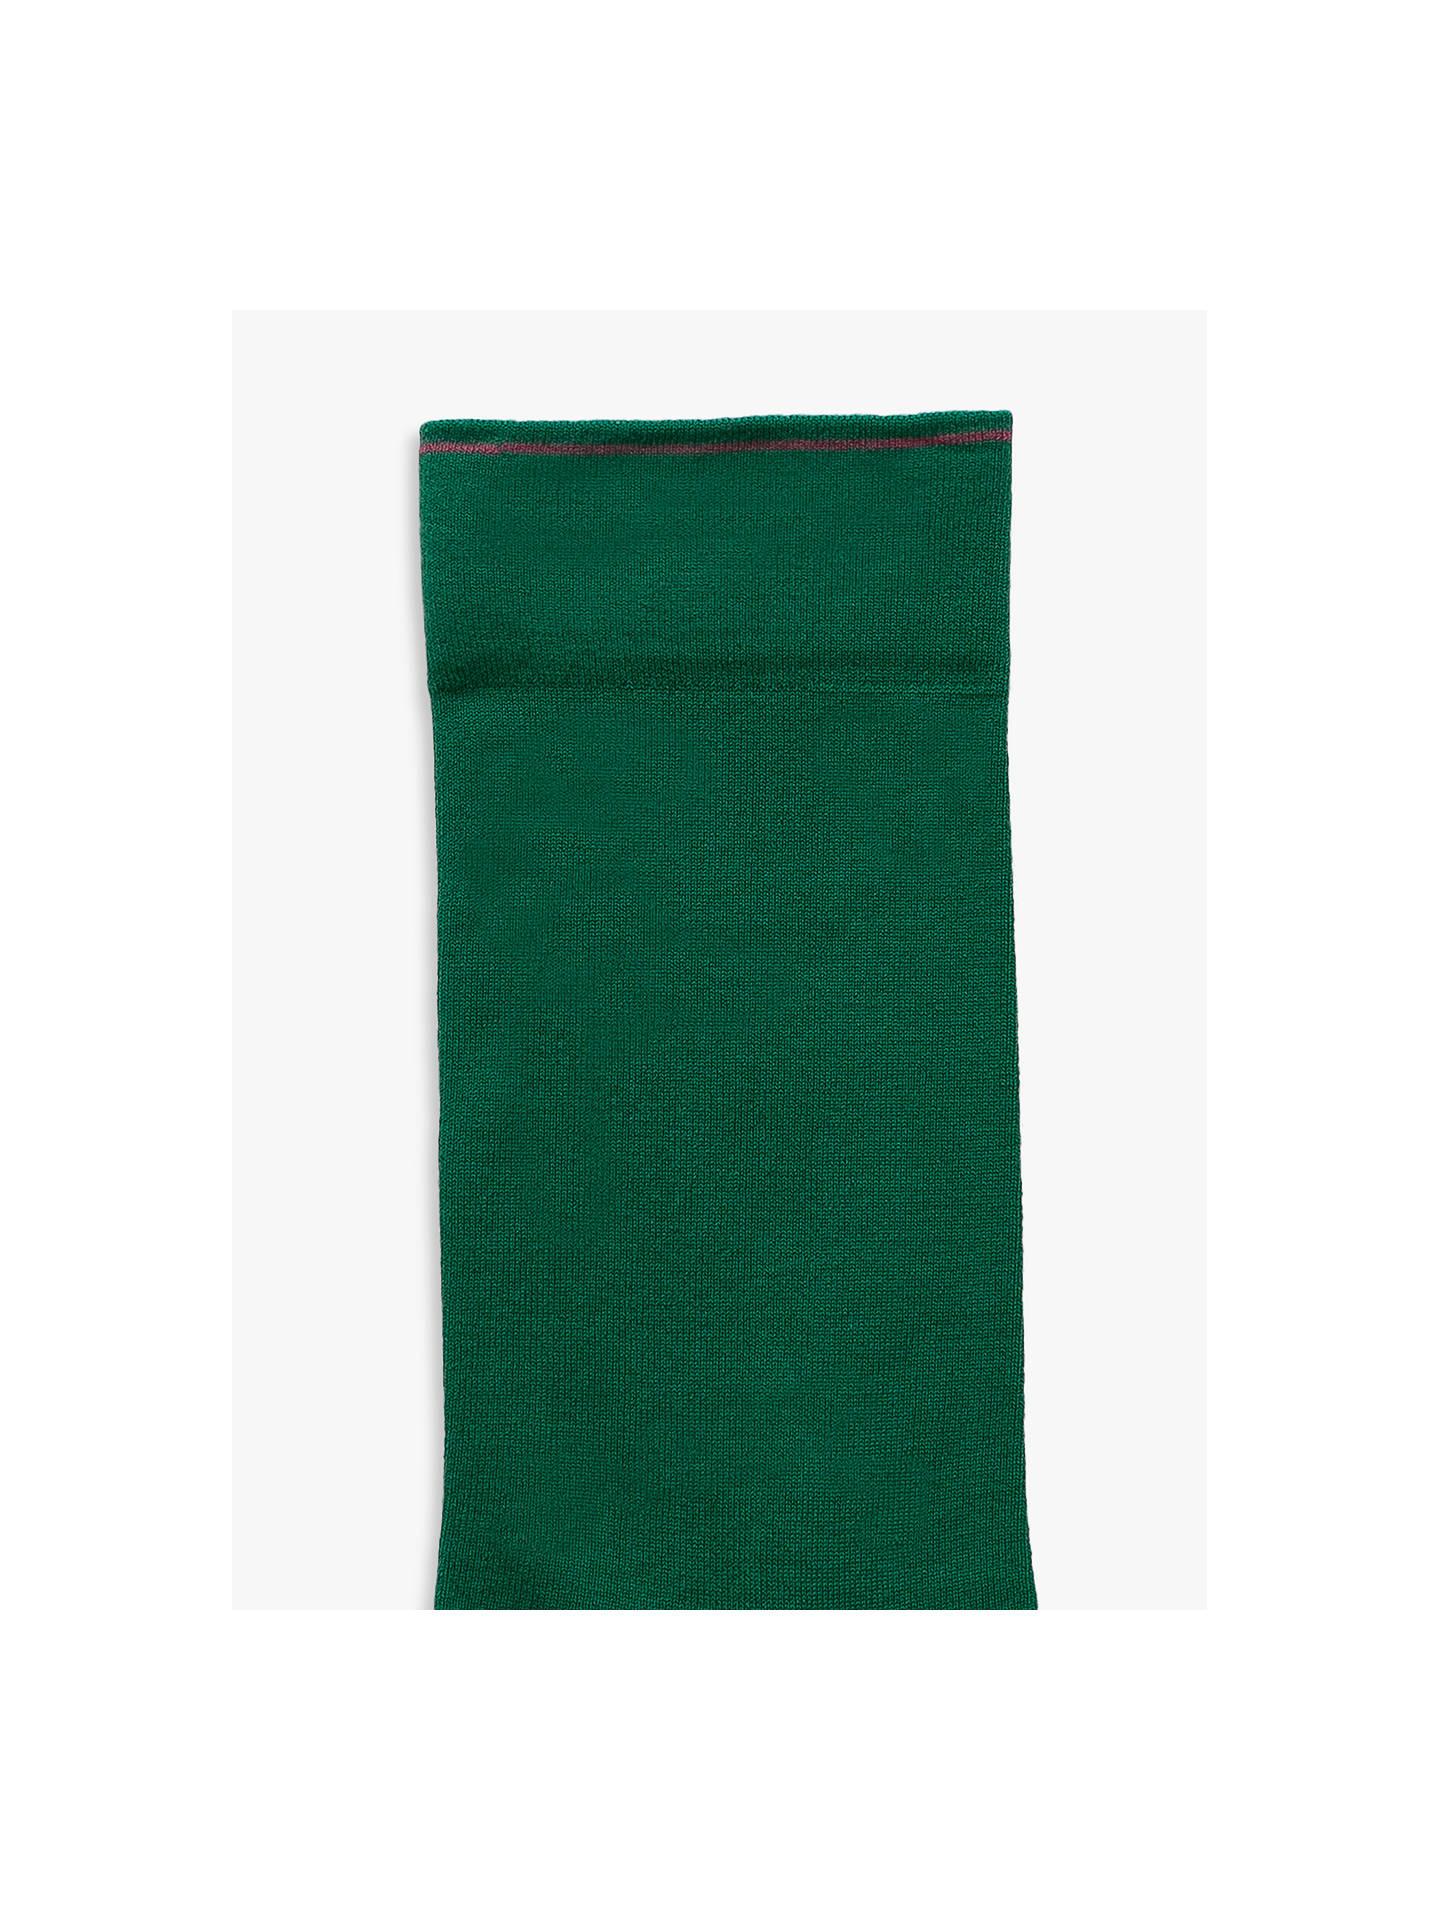 BuyBonne Maison Ultra Soft Socks, Green/Pink, S-M Online at johnlewis.com